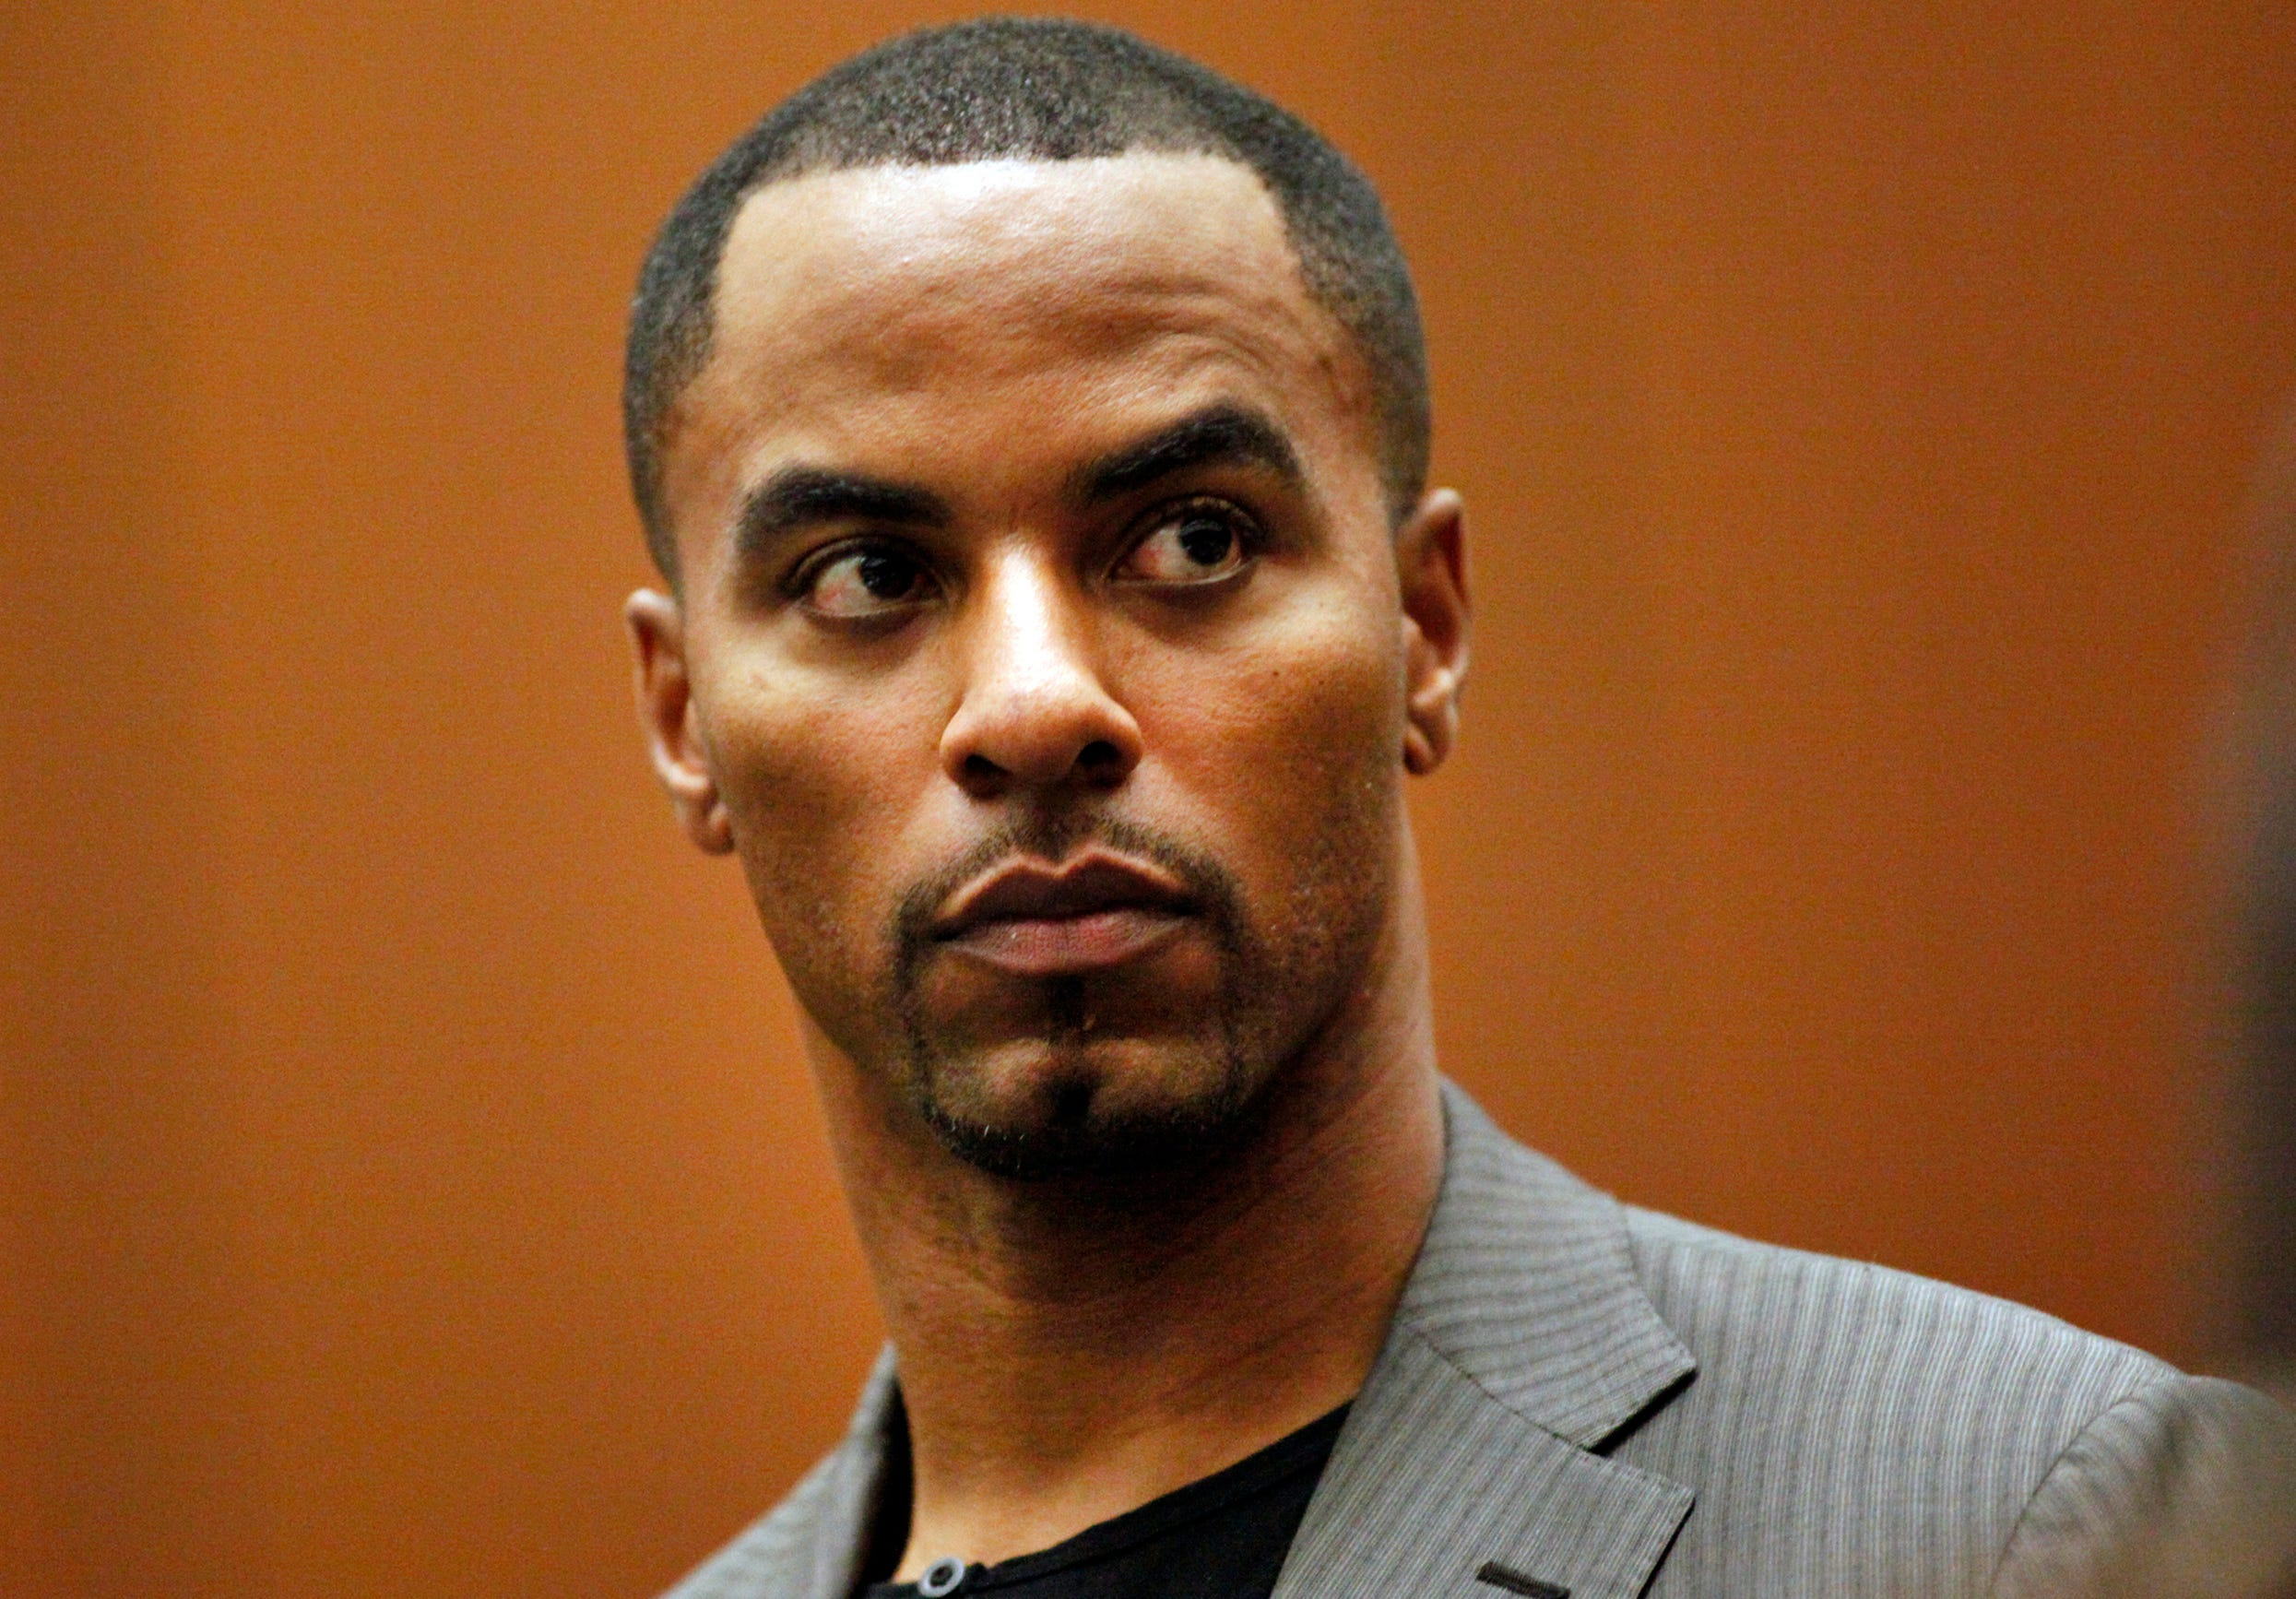 Disgraced NFL star loses bid to undo plea deal in rape case thumbnail